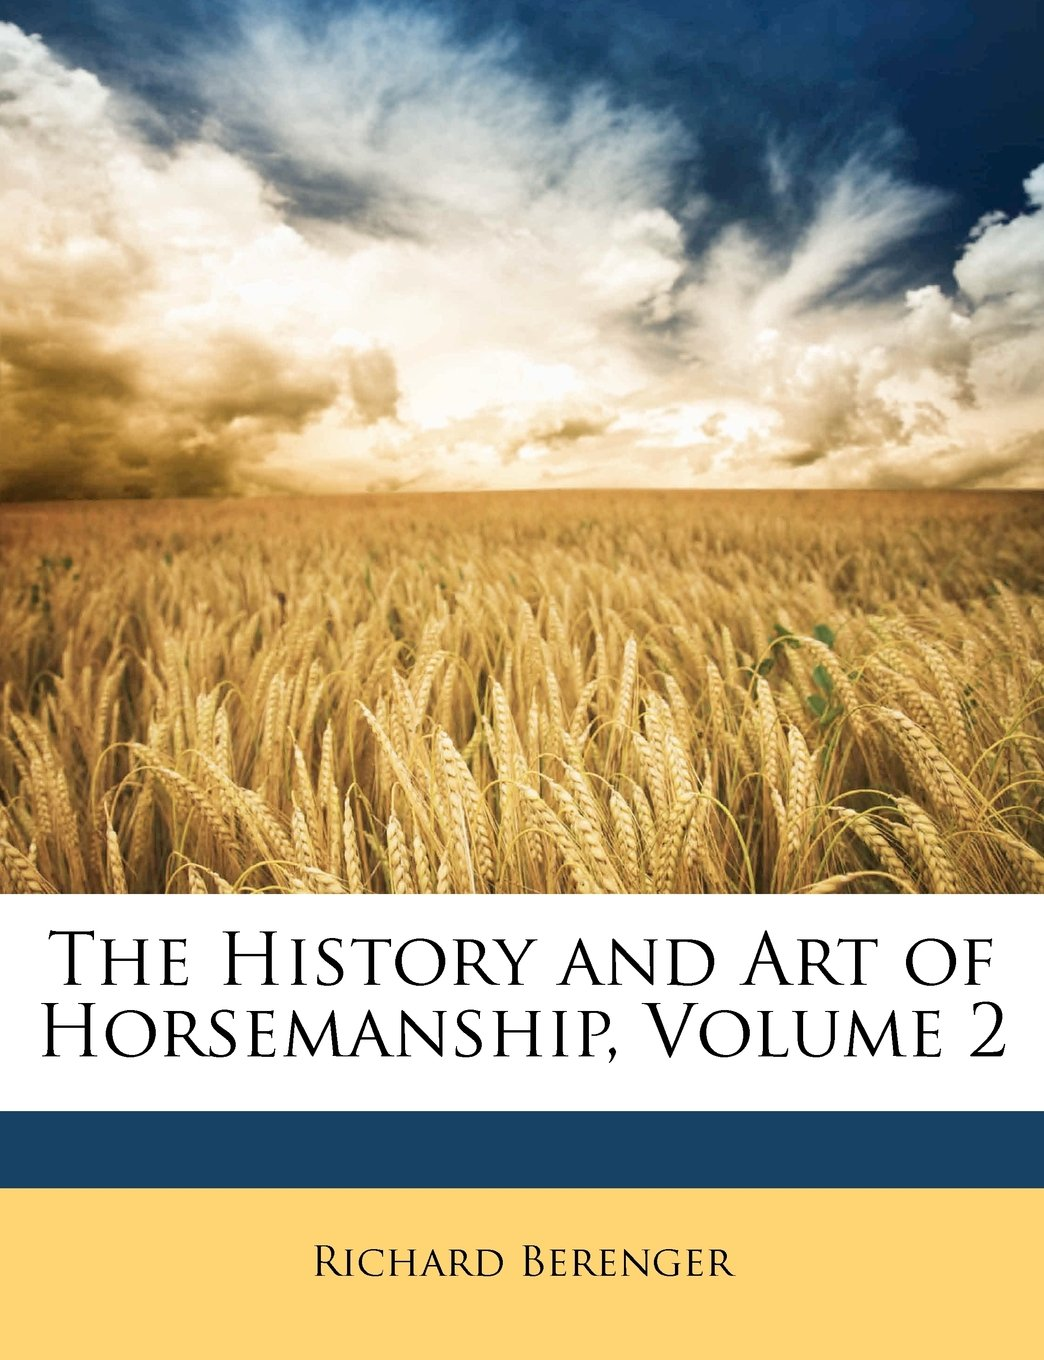 The History and Art of Horsemanship, Volume 2 pdf